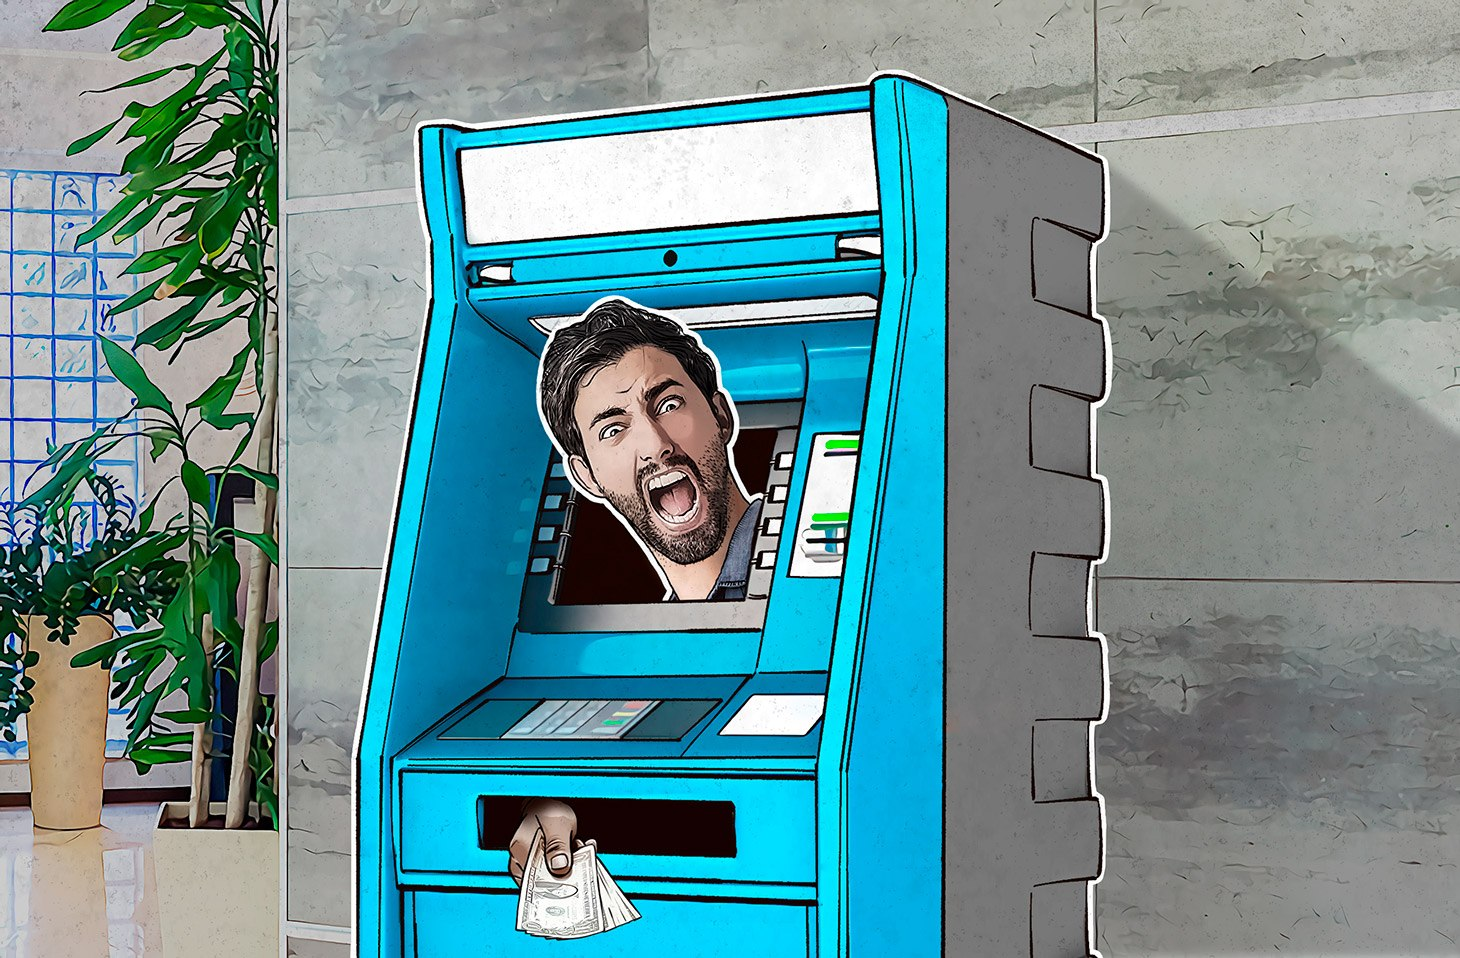 They remotely instructed ATMs to dispense cash, which mules collected.